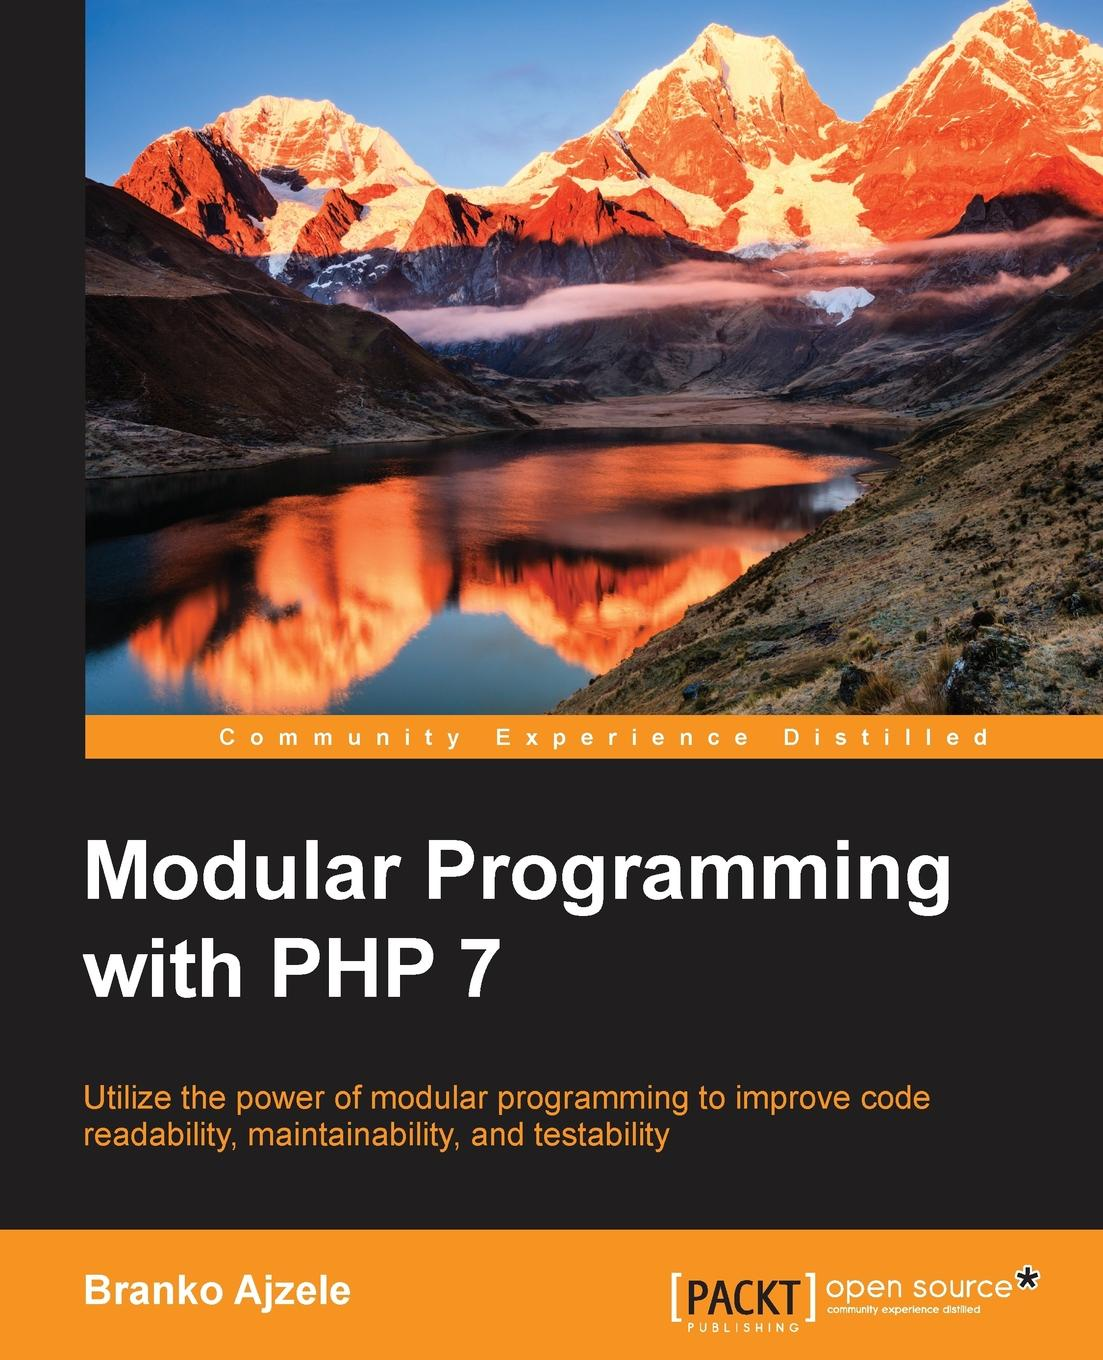 Branko Ajzele Modular Programming with PHP 7